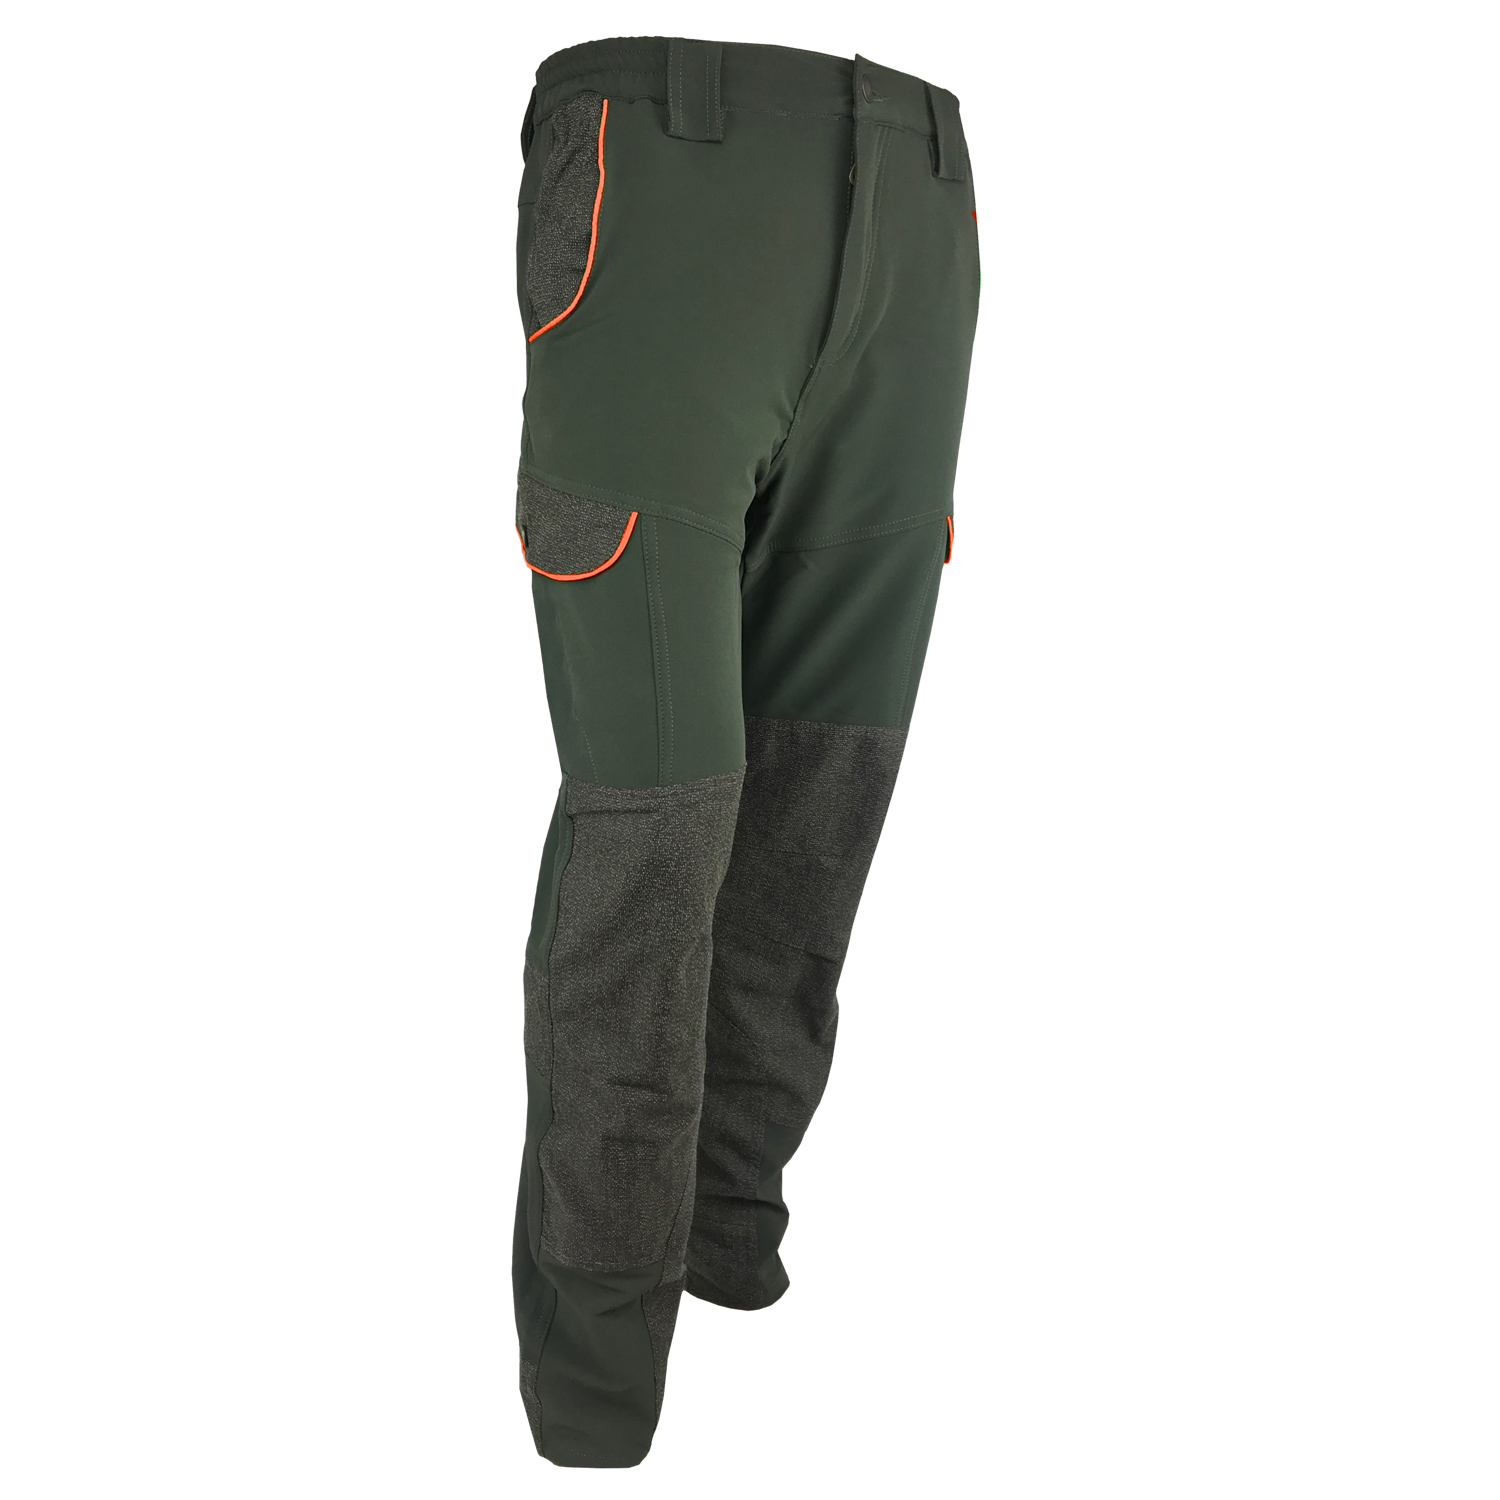 Pants trousers stretch kevlar swaps hunting man outdoor green